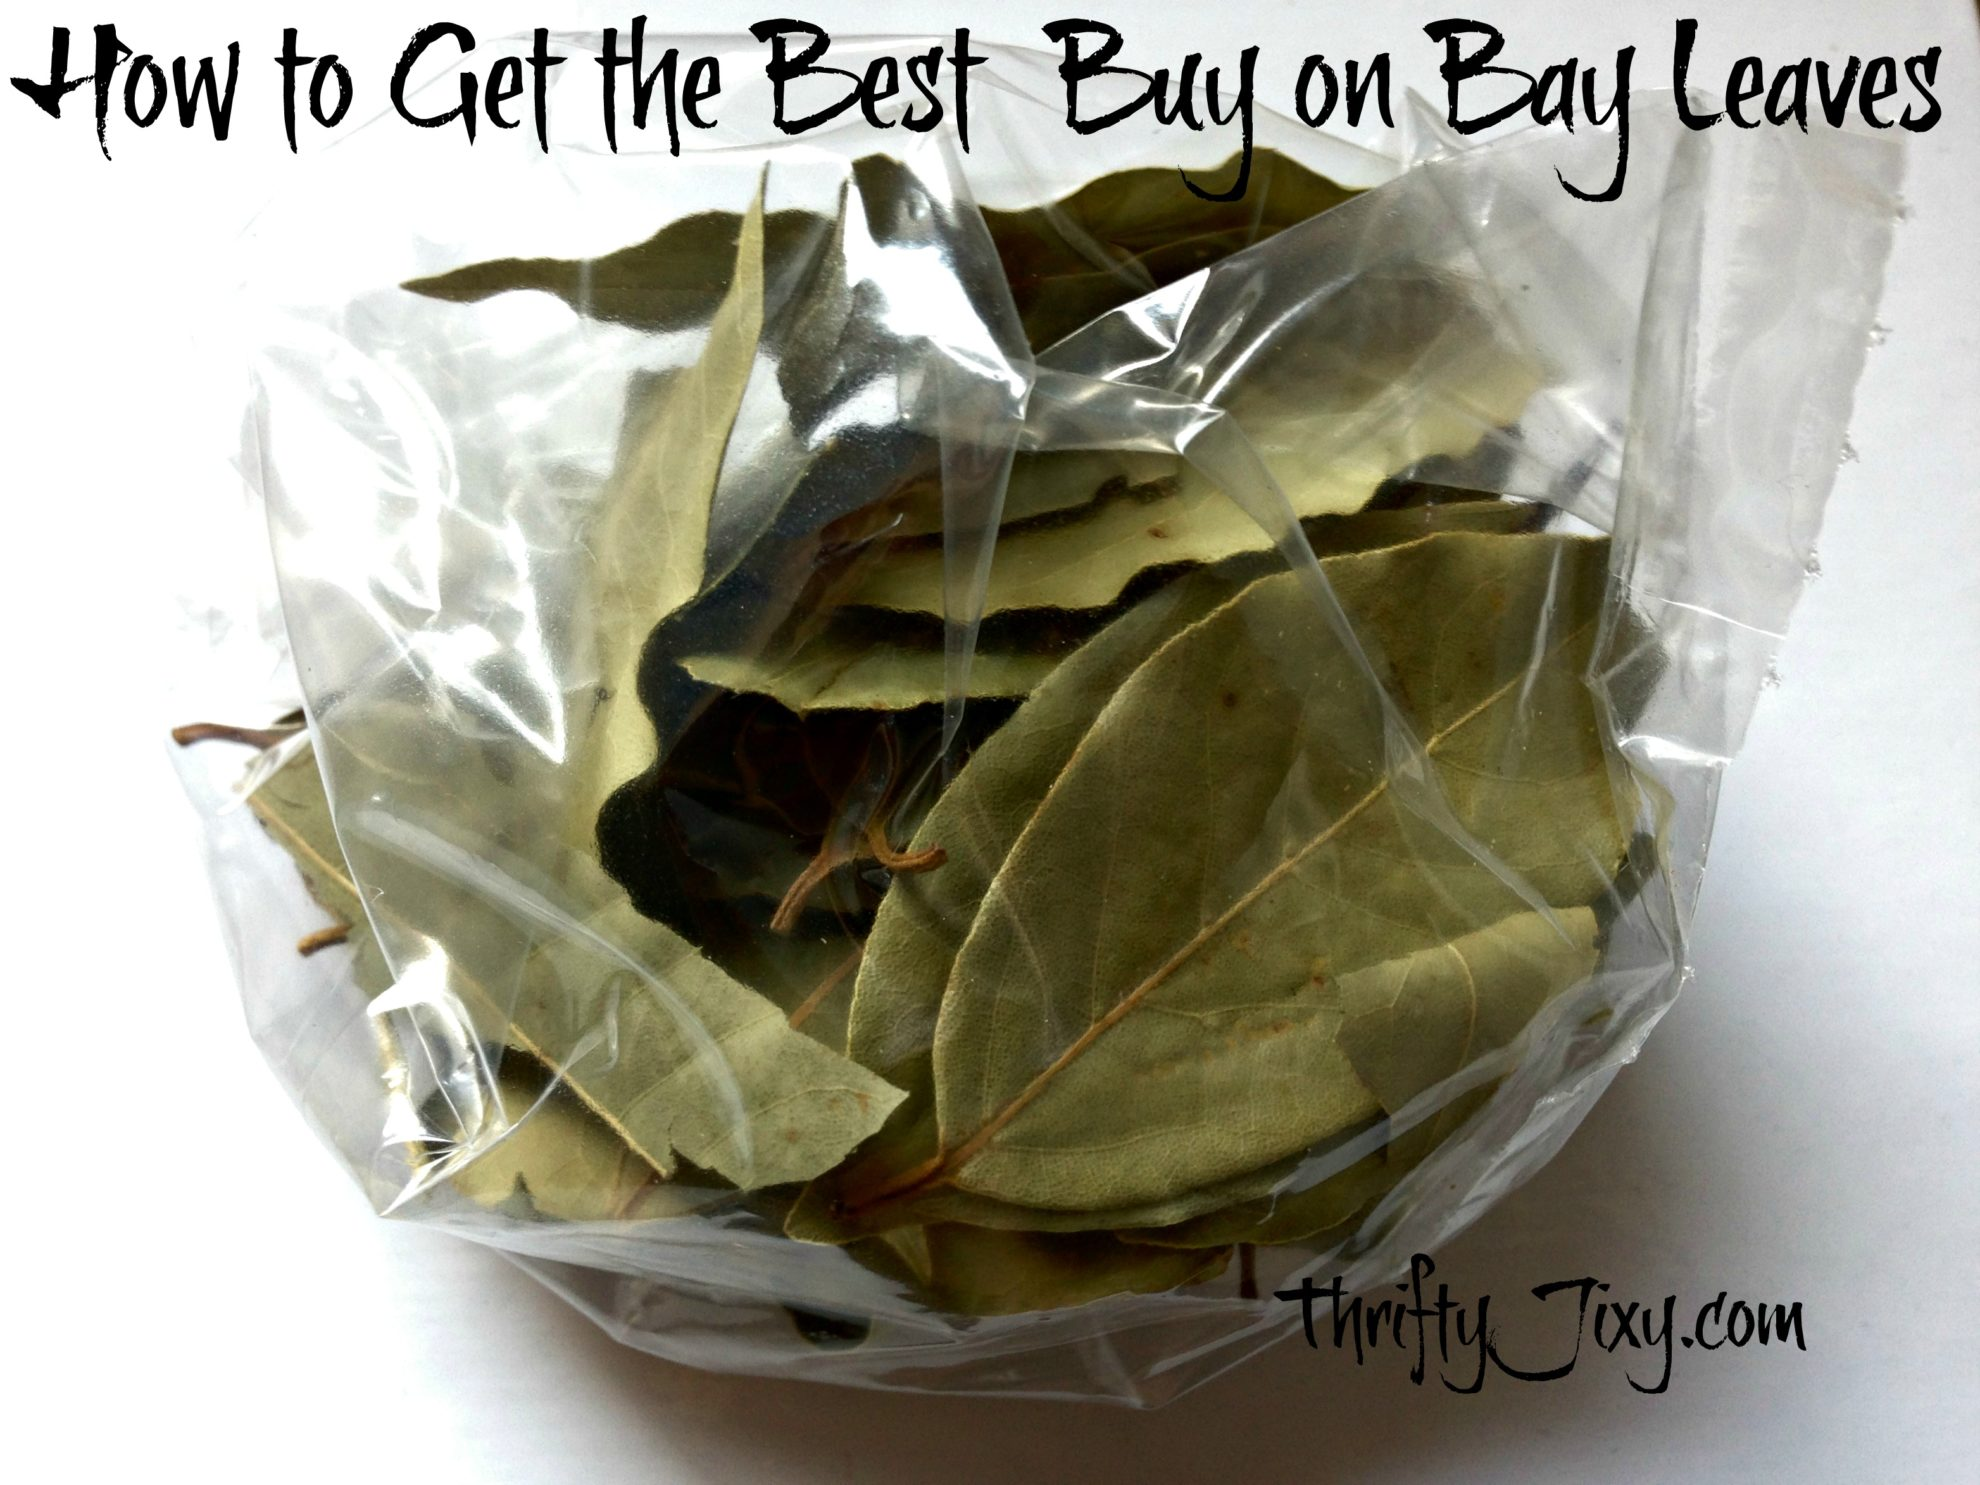 How to Get the Best Price on Bay Leaves